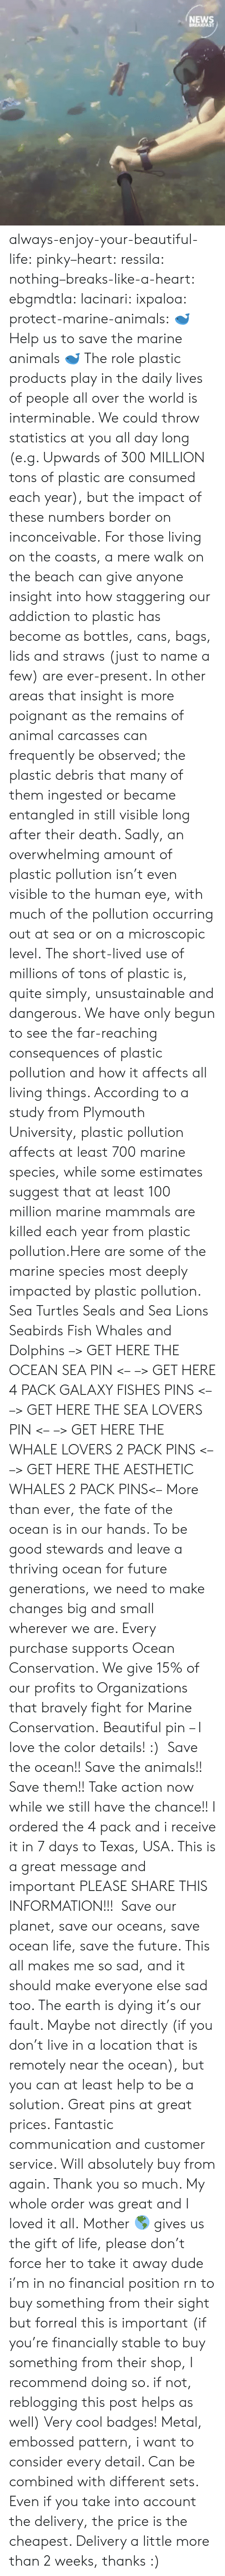 The Gift: NEWS  BREAKFAST always-enjoy-your-beautiful-life:  pinky–heart: ressila:  nothing–breaks-like-a-heart:  ebgmdtla:  lacinari:  ixpaloa:  protect-marine-animals:  ? Help us to save the marine animals ? The role plastic products play in the daily lives of people all over the world is interminable. We could throw statistics at you all day long (e.g. Upwards of 300 MILLION tons of plastic are consumed each year), but the impact of these numbers border on inconceivable. For those living on the coasts, a mere walk on the beach can give anyone insight into how staggering our addiction to plastic has become as bottles, cans, bags, lids and straws (just to name a few) are ever-present. In other areas that insight is more poignant as the remains of animal carcasses can frequently be observed; the plastic debris that many of them ingested or became entangled in still visible long after their death. Sadly, an overwhelming amount of plastic pollution isn't even visible to the human eye, with much of the pollution occurring out at sea or on a microscopic level. The short-lived use of millions of tons of plastic is, quite simply, unsustainable and dangerous. We have only begun to see the far-reaching consequences of plastic pollution and how it affects all living things. According to a study from Plymouth University, plastic pollution affects at least 700 marine species, while some estimates suggest that at least 100 million marine mammals are killed each year from plastic pollution.Here are some of the marine species most deeply impacted by plastic pollution. Sea Turtles Seals and Sea Lions Seabirds Fish Whales and Dolphins –> GET HERE THE OCEAN SEA PIN <– –> GET HERE 4 PACK GALAXY FISHES PINS <– –> GET HERE THE SEA LOVERS PIN <– –> GET HERE THE WHALE LOVERS 2 PACK PINS <– –> GET HERE THE AESTHETIC WHALES 2 PACK PINS<– More than ever, the fate of the ocean is in our hands. To be good stewards and leave a thriving ocean for future generations, we need to make changes big and small wherever we are. Every purchase supports Ocean Conservation. We give 15% of our profits to Organizations that bravely fight for Marine Conservation.  Beautiful pin – I love the color details! :)   Save the ocean!! Save the animals!! Save them!! Take action now while we still have the chance!!  I ordered the 4 pack and i receive it in 7 days to Texas, USA. This is a great message and important PLEASE SHARE THIS INFORMATION!!!   Save our planet, save our oceans, save ocean life, save the future. This all makes me so sad, and it should make everyone else sad too. The earth is dying it's our fault. Maybe not directly (if you don't live in a location that is remotely near the ocean), but you can at least help to be a solution.  Great pins at great prices. Fantastic communication and customer service. Will absolutely buy from again. Thank you so much. My whole order was great and I loved it all. Mother ? gives us the gift of life, please don't force her to take it away  dude i'm in no financial position rn to buy something from their sight but forreal this is important (if you're financially stable to buy something from their shop, I recommend doing so. if not, reblogging this post helps as well)  Very cool badges! Metal, embossed pattern, i want to consider every detail. Can be combined with different sets. Even if you take into account the delivery, the price is the cheapest. Delivery a little more than 2 weeks, thanks :)